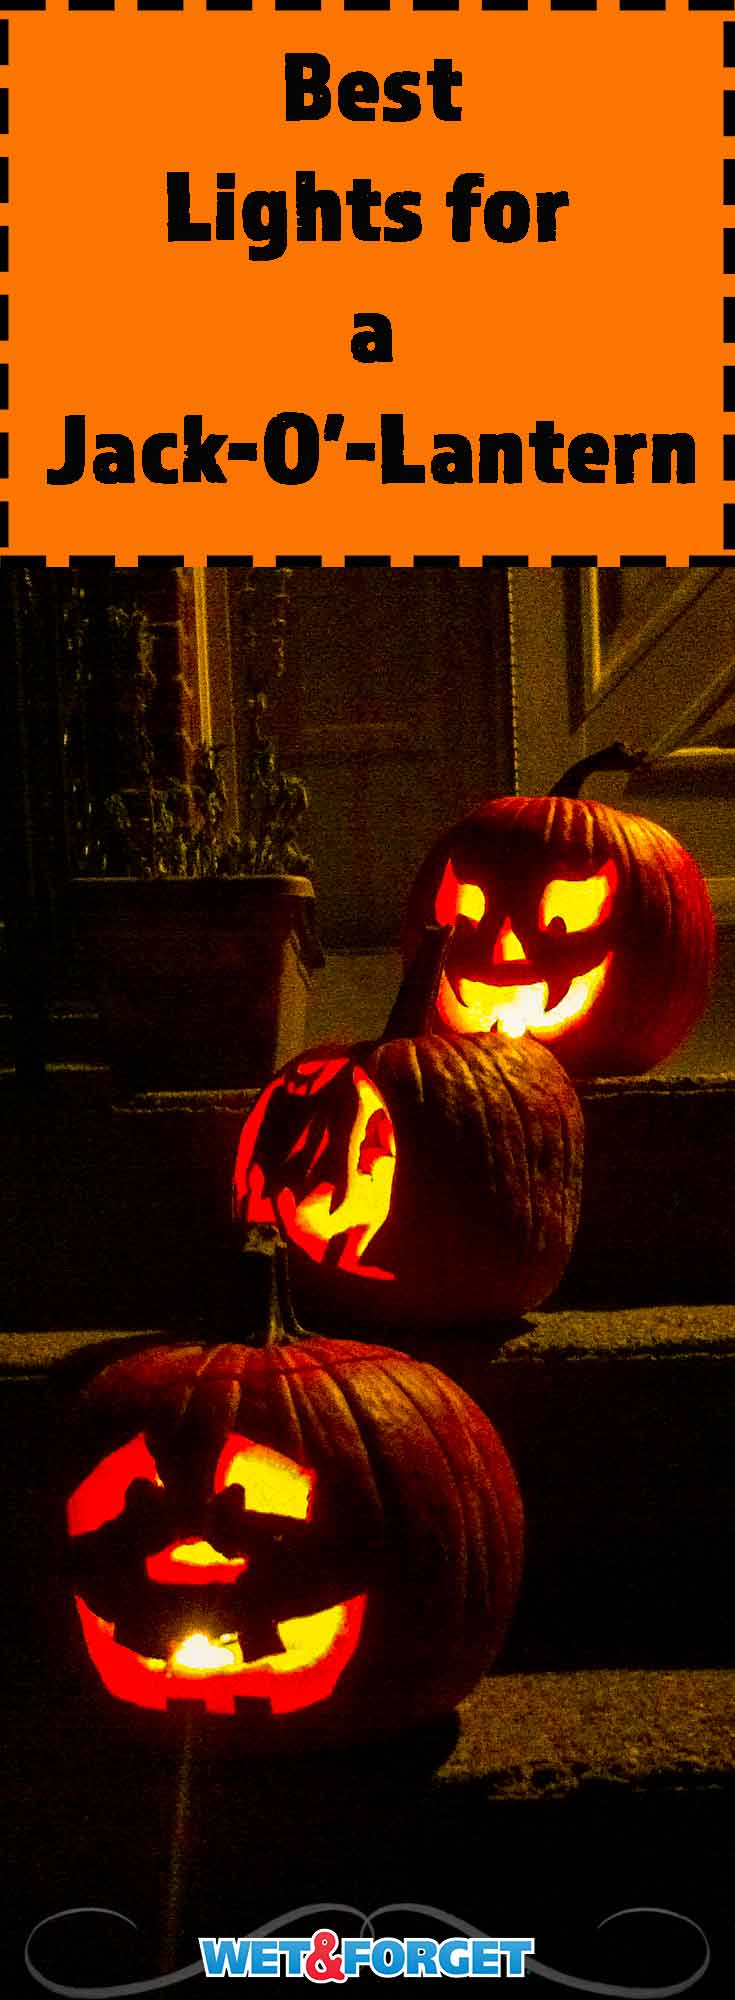 It can be tricky trying to find the best light to illuminate your pumpkin. Discover the best option for your jack-o'-lantern with our guide!